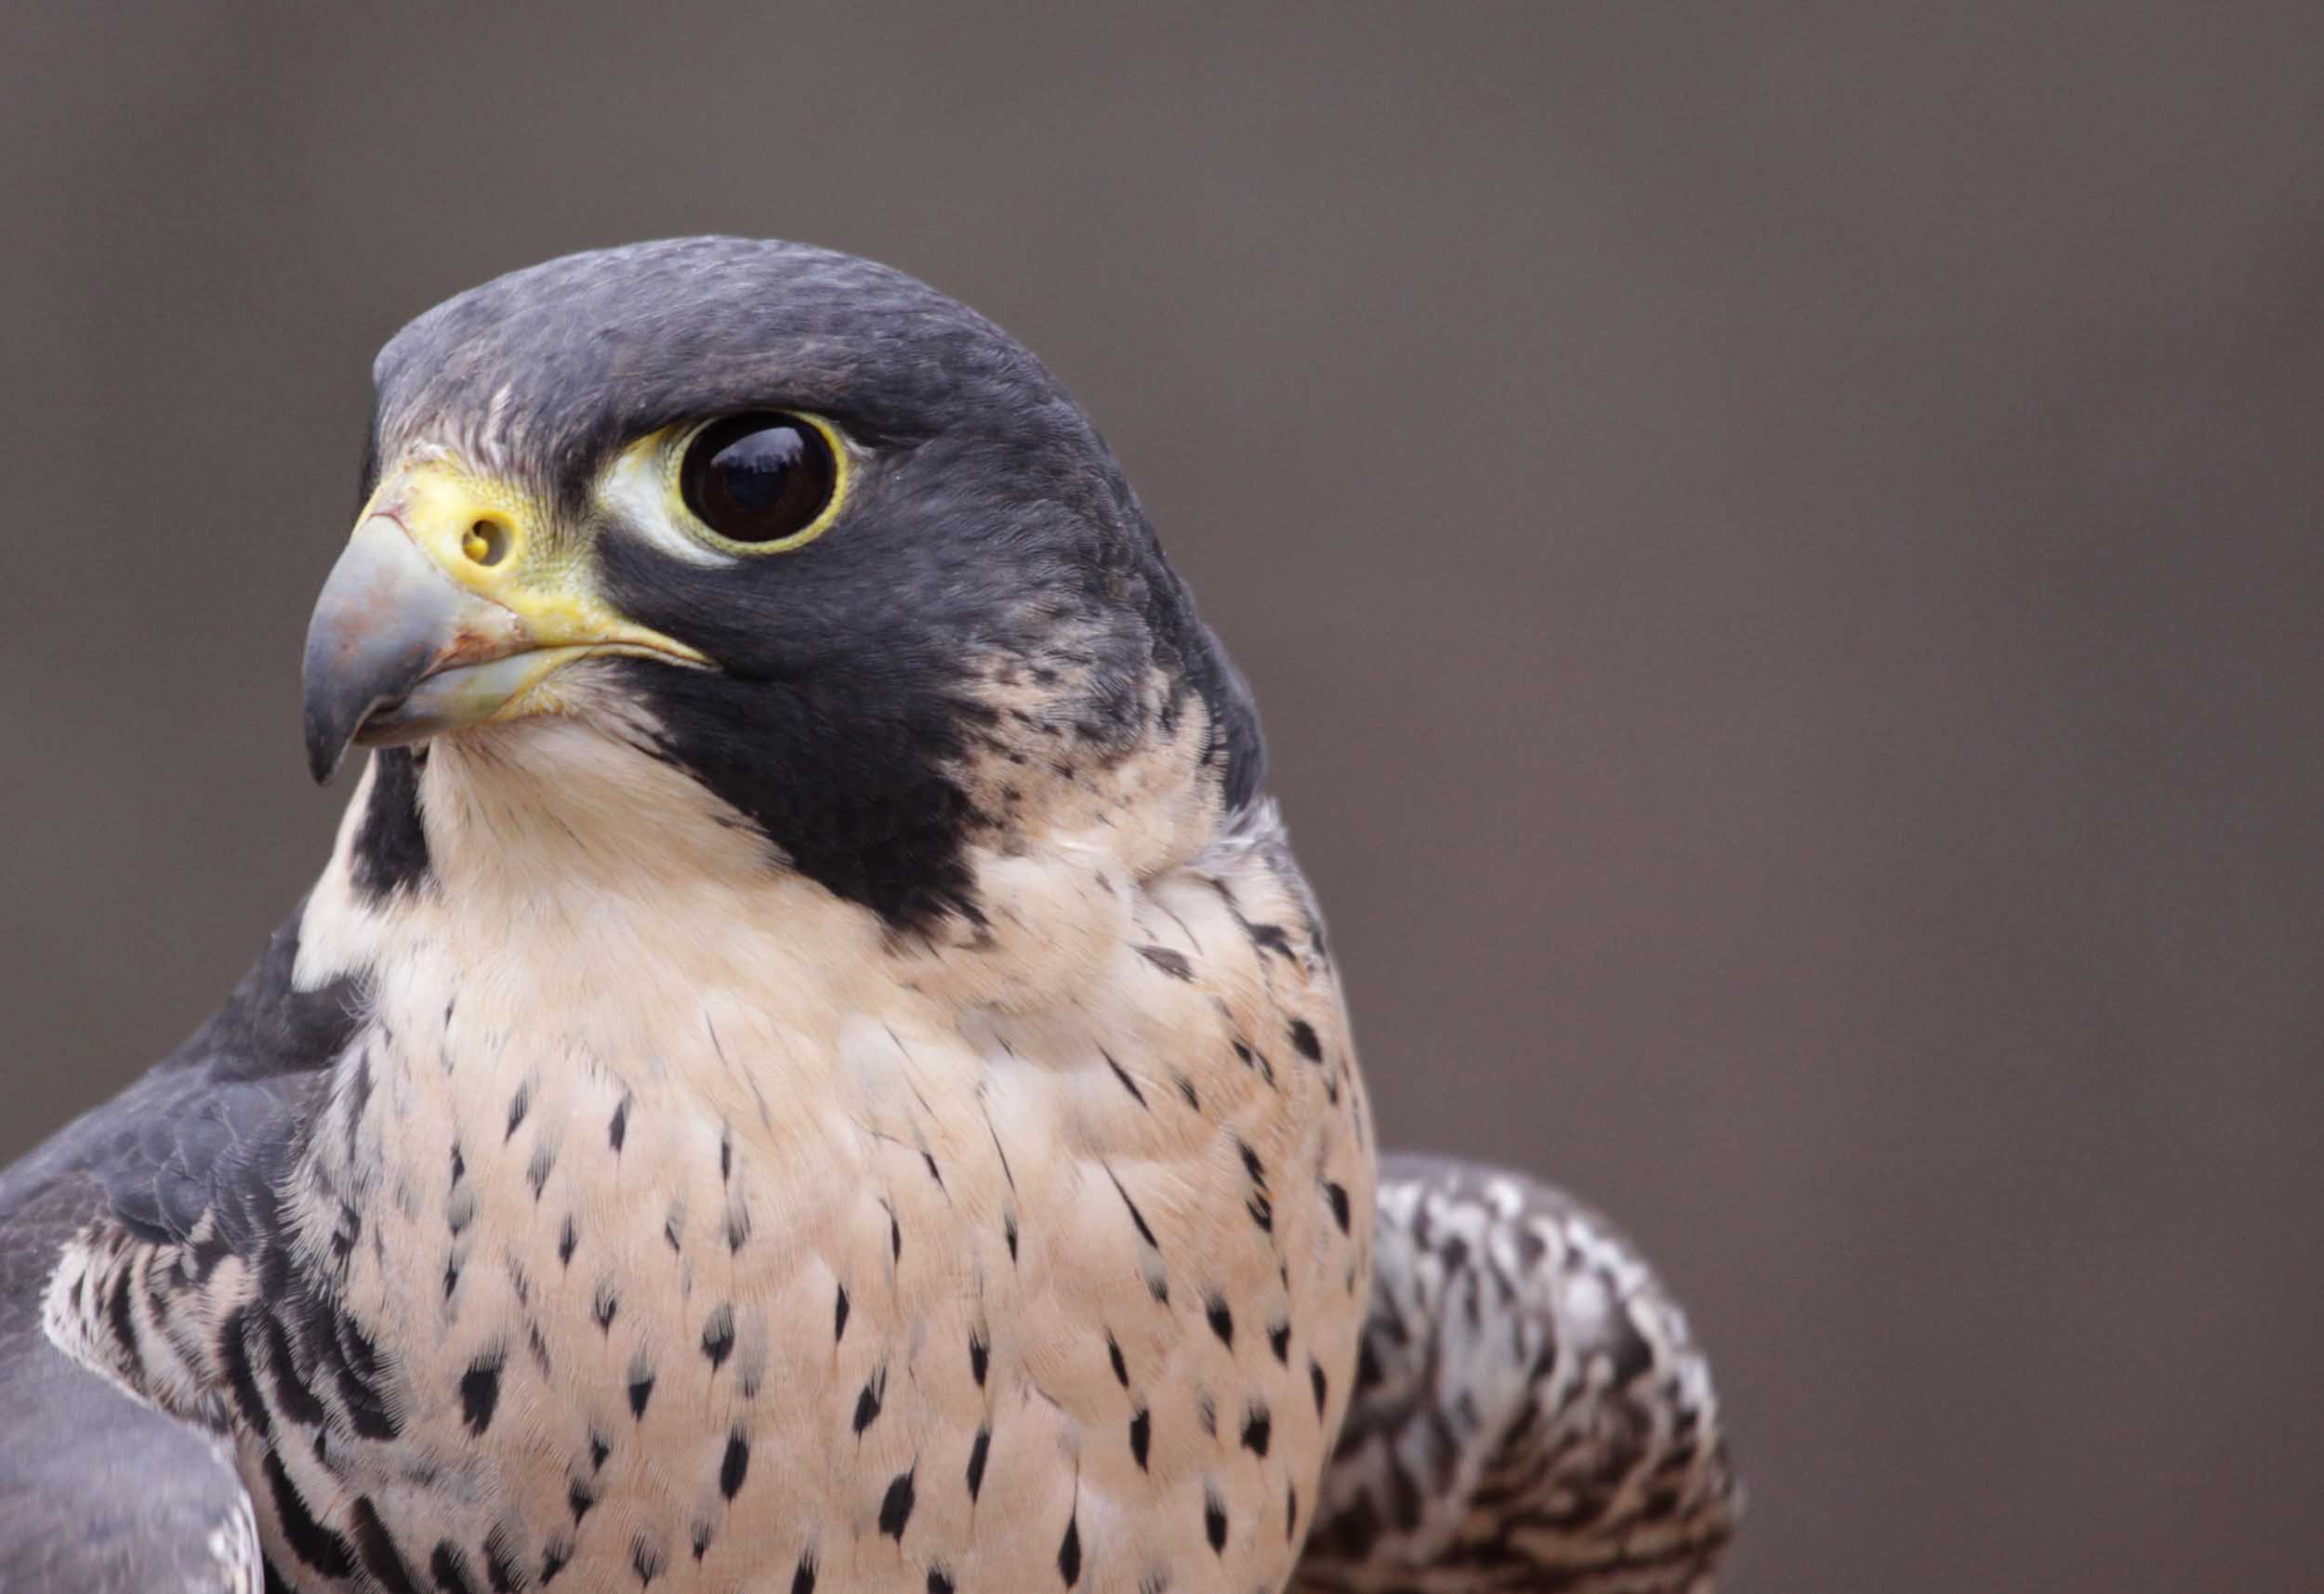 Birds that learn new behaviors less likely to go extinct, says study